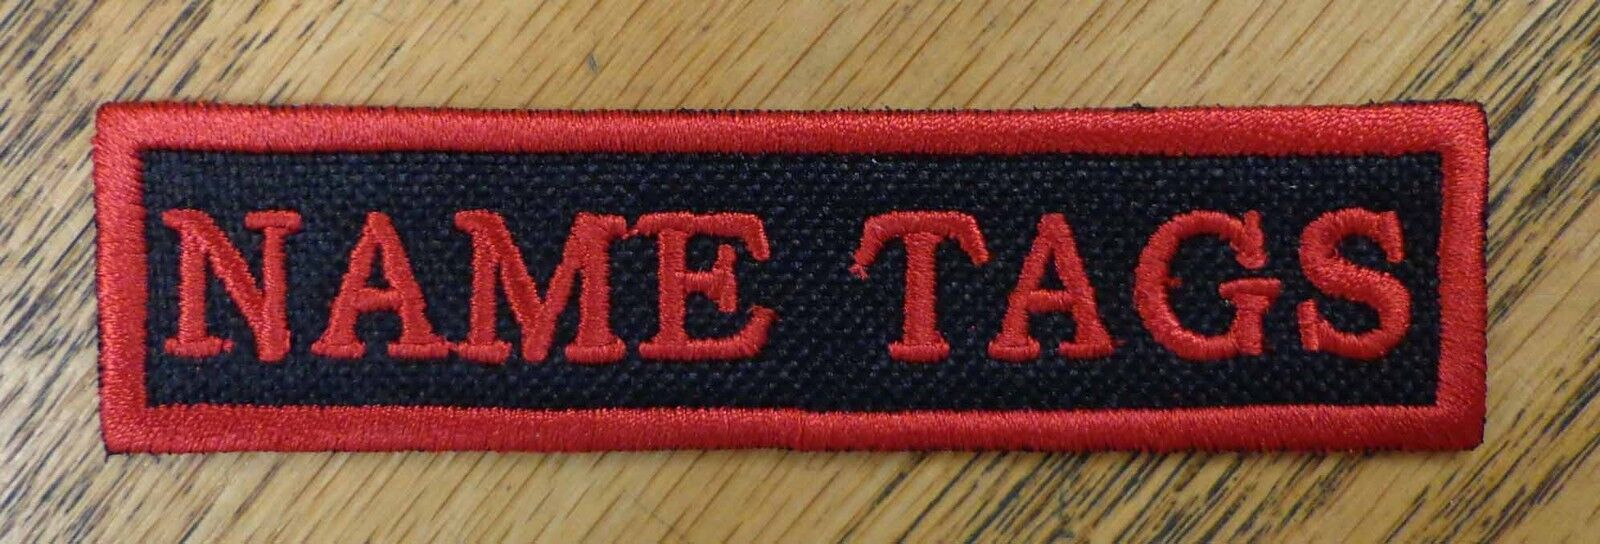 CUSTOM EMBROIDERED PATCH NAME TITLE TAG 1 X 4 INCH TABS MADE IN USA